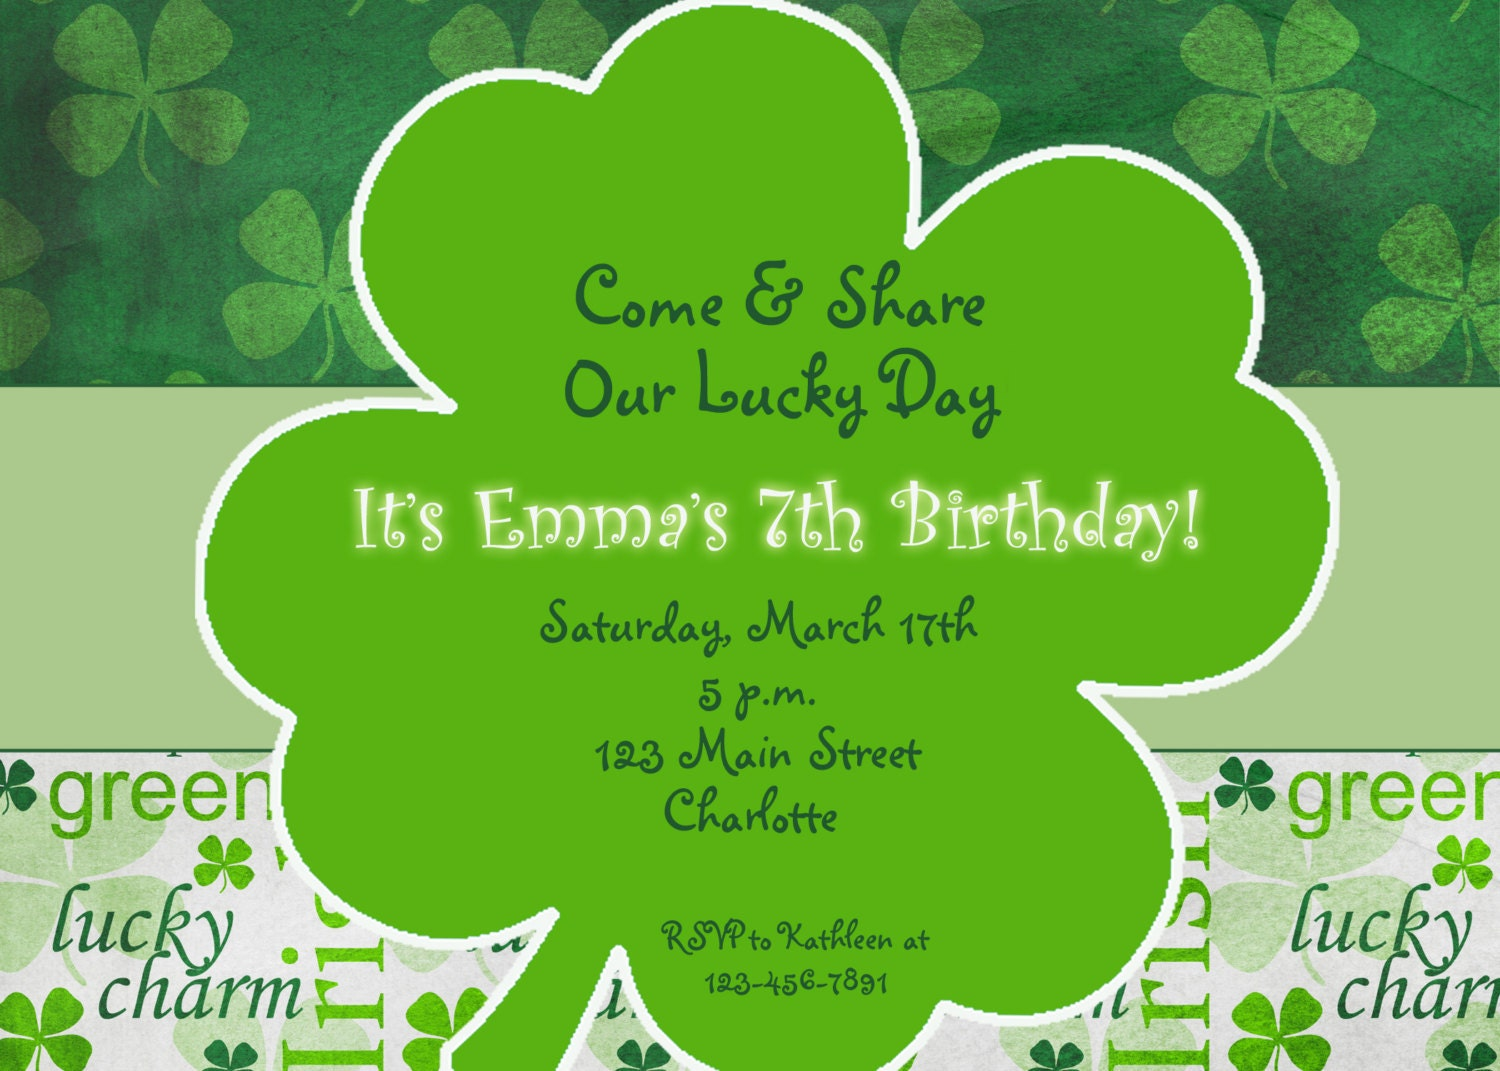 St. Patricks Day party birthday invitation - St. Patricks Day St ...